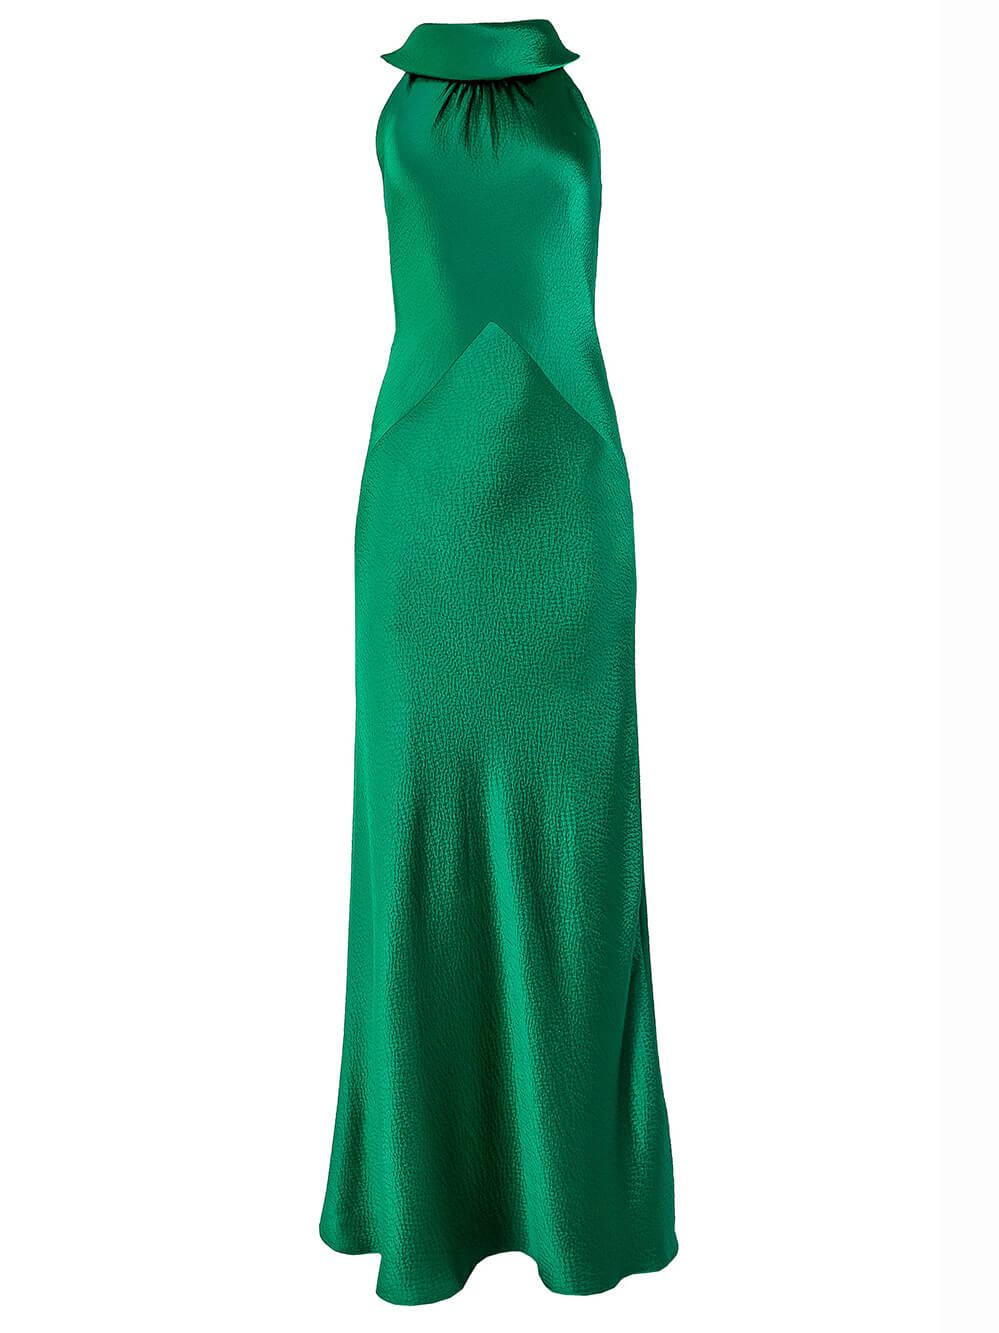 Hammered Satin Halter Gown